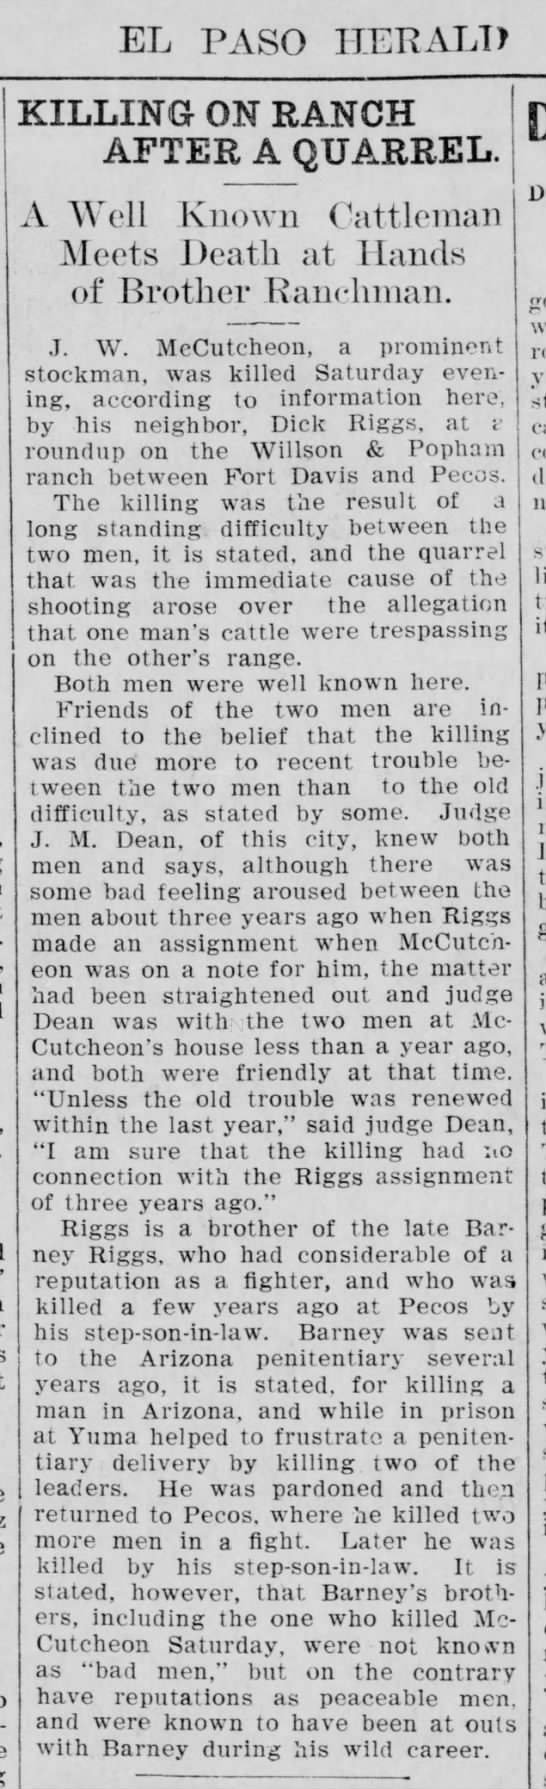 J. W. McCutcheon death -